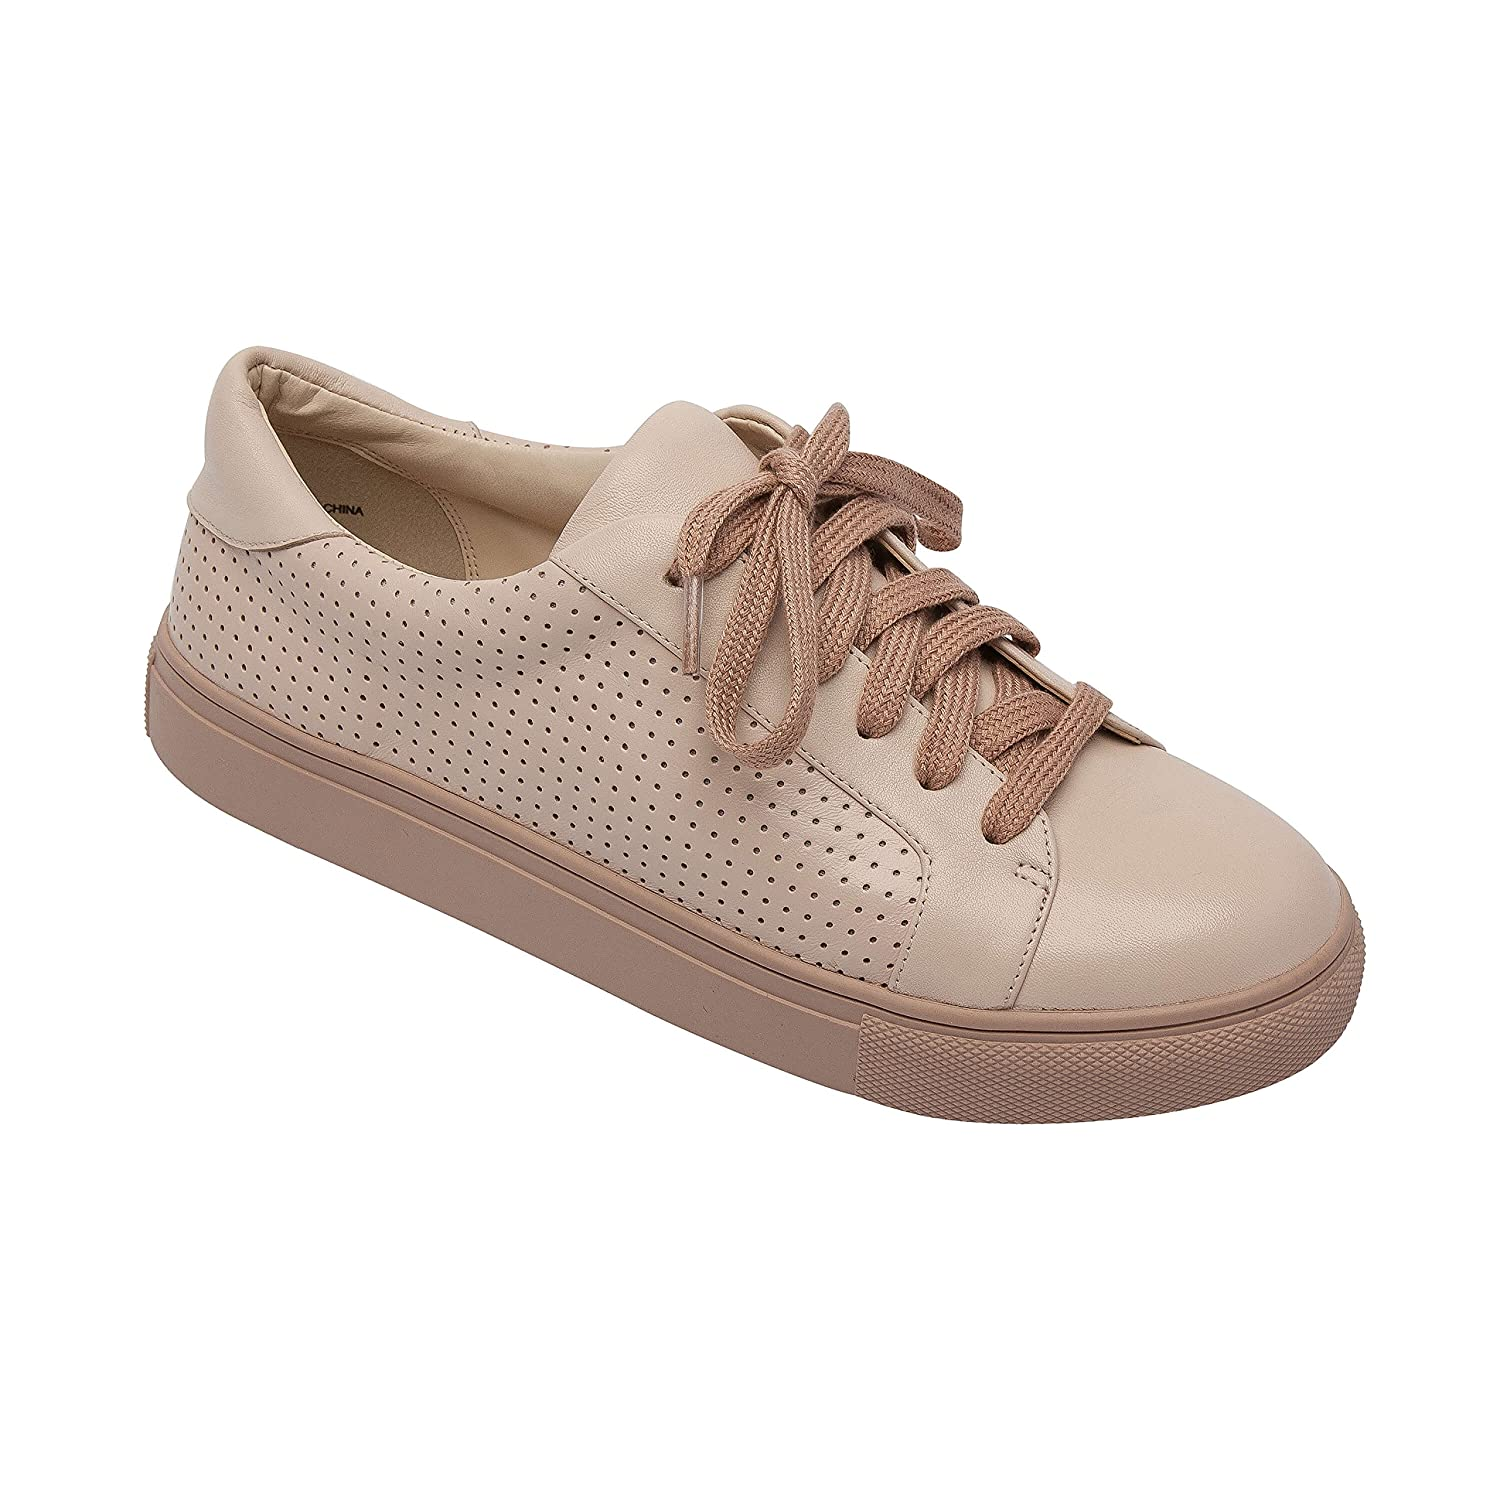 OLLYN | Women's Lace-up Perforated Leather Or Suede Comfortable Fashion Sneaker B07B6FLN5B 6.5 B(M) US|Blush Leather